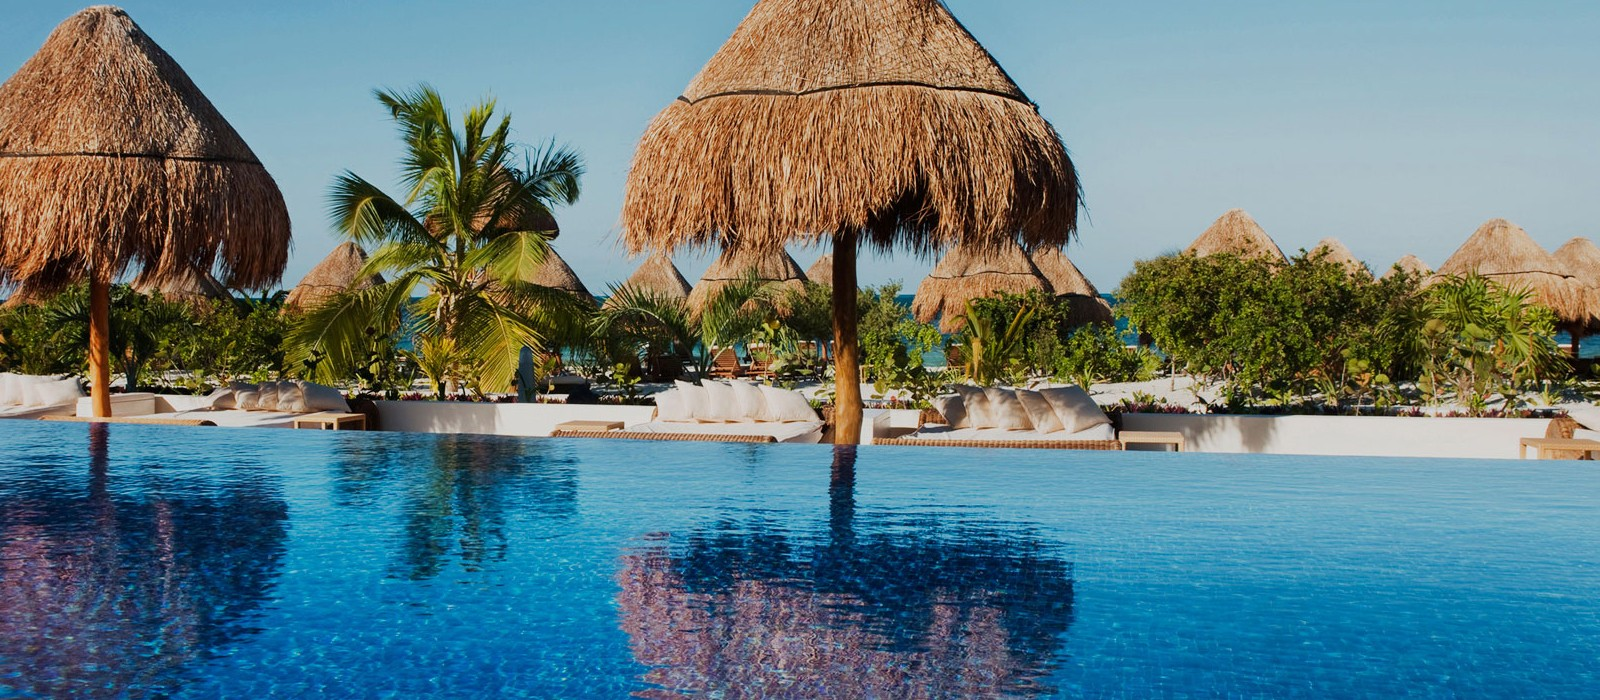 header - The Beloved Hotel Playa Mujeres - Mexico holidays Packages